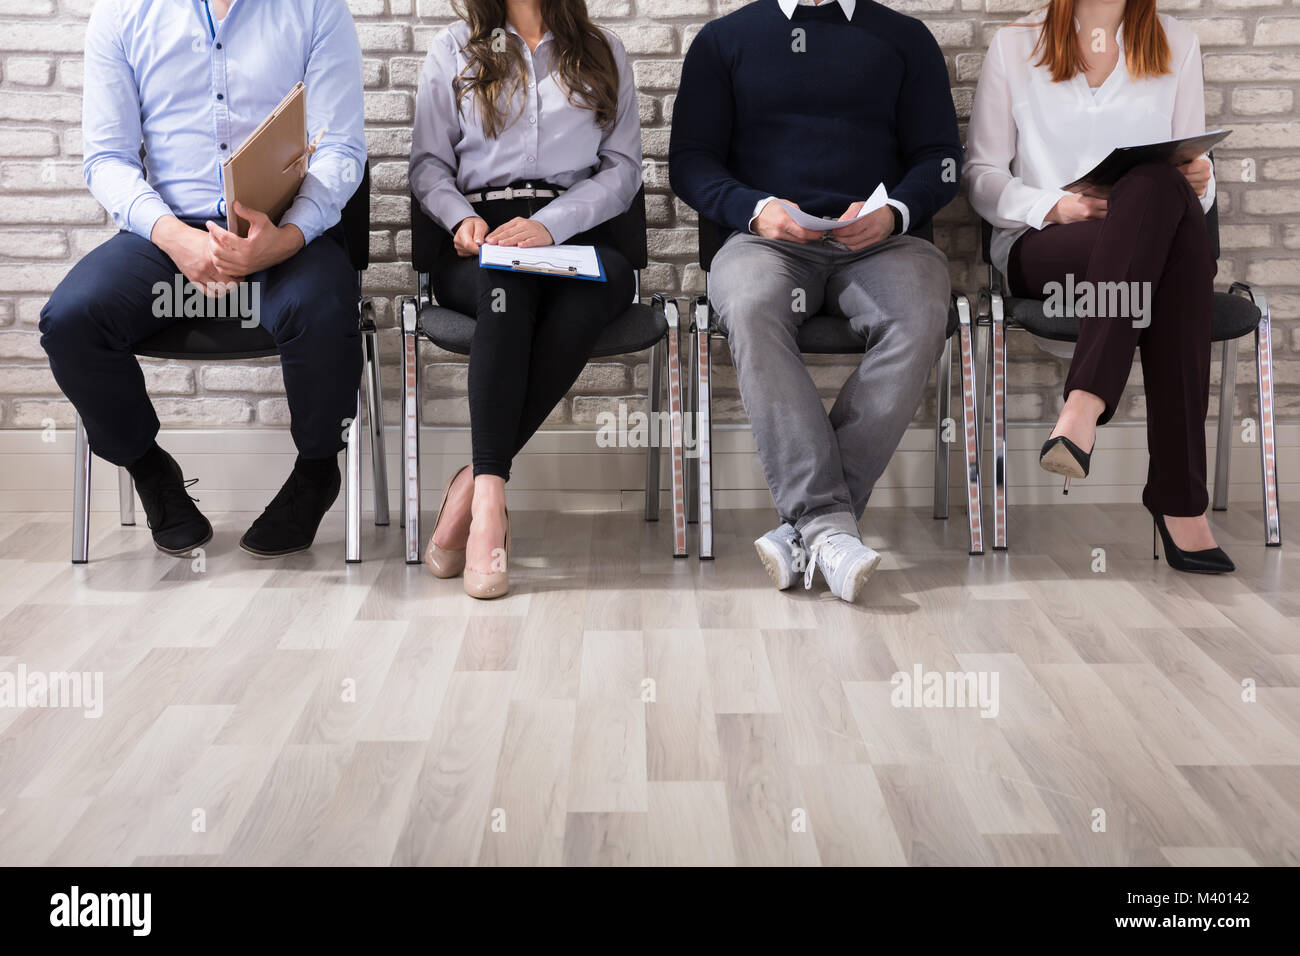 Close-up Of Business People Sitting On Chair Waiting For Job Interview In Office - Stock Image